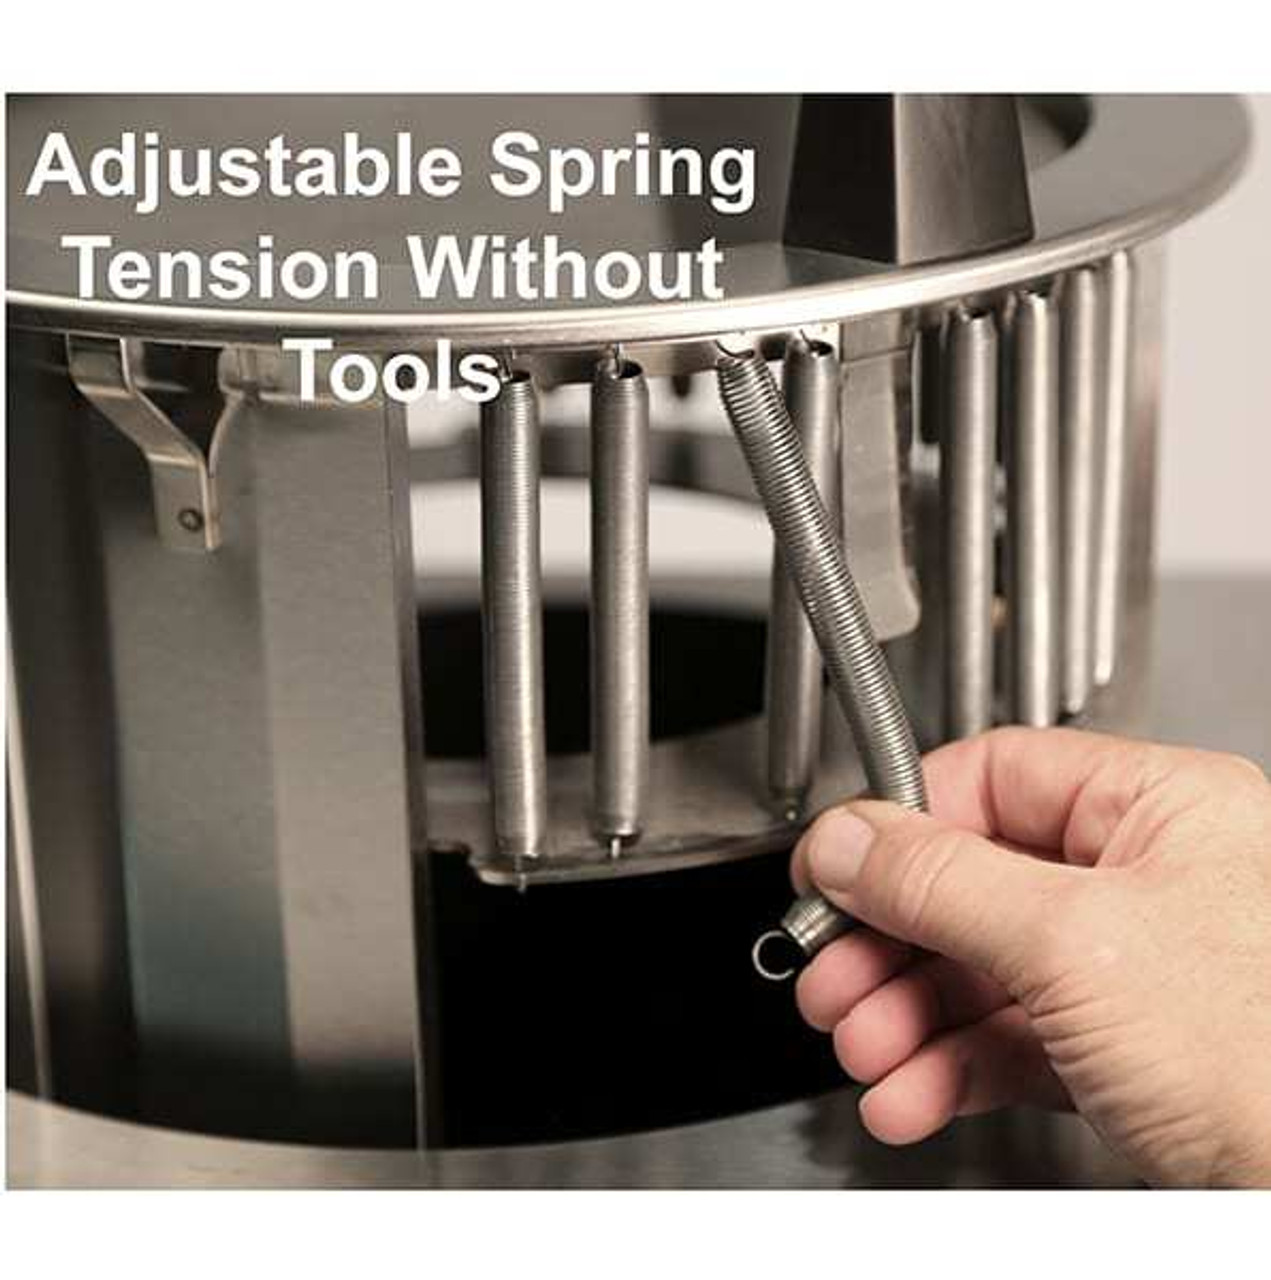 """Dish Dispenser, heated, cabinet style, enclosed base, mobile, (2) self-leveling dish dispensing tubes, 6-5/8"""" to 7-1/4"""" diameter dish size, stainless steel construction, 4"""" Lake-Glide® swivel casters (2) with brakes, 6' coiled cord with NEMA 5-15P, NSF, UL, Made in USA"""